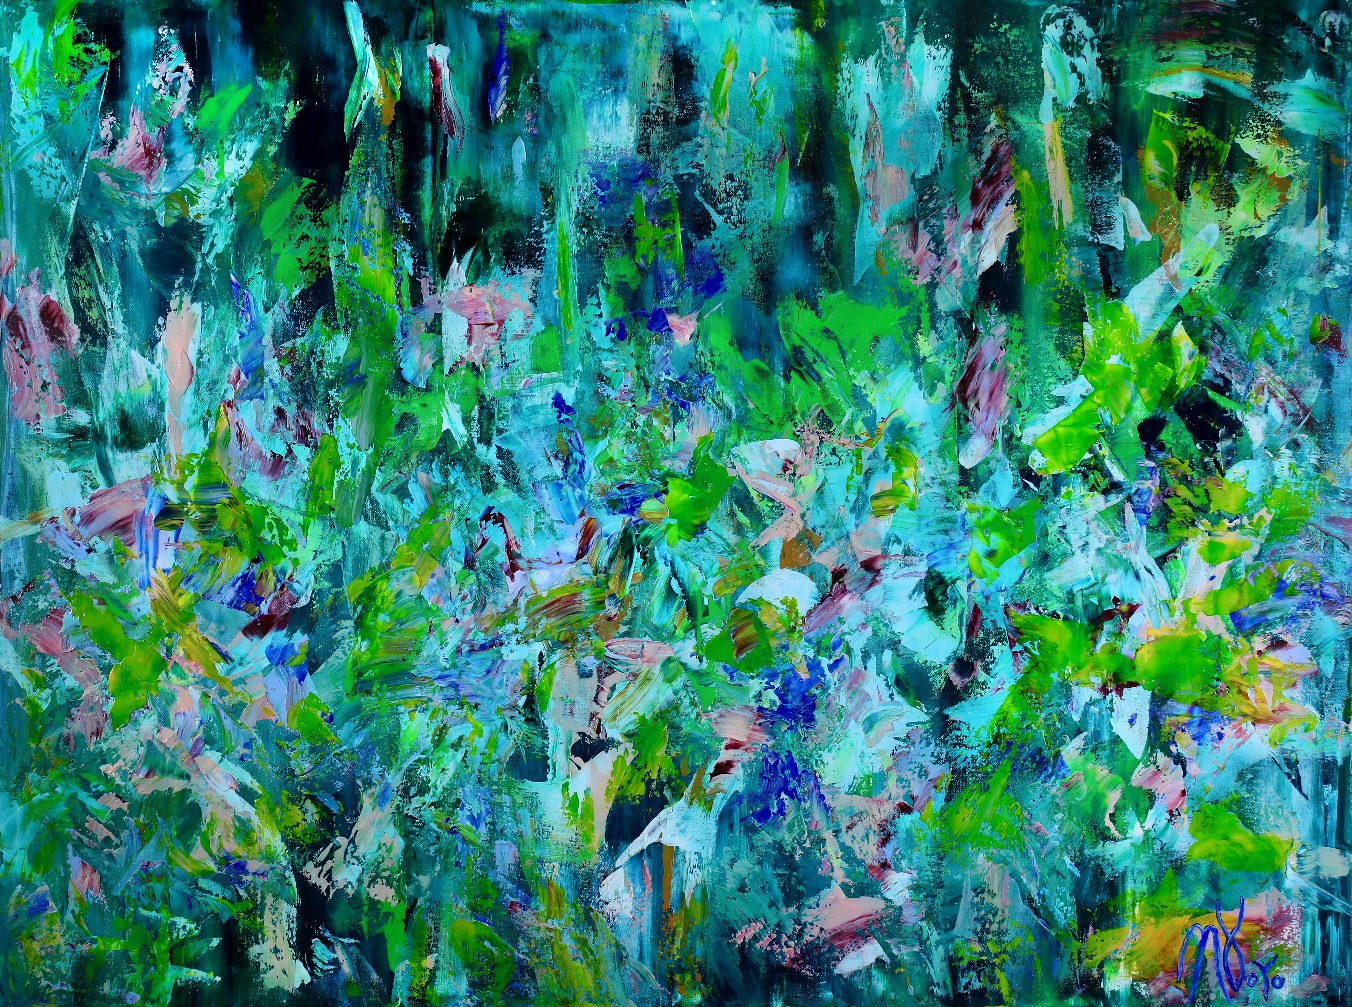 After the rainfall - READY TO HANG! (2018) abstract expressionistic Acrylic painting by Nestor Toro